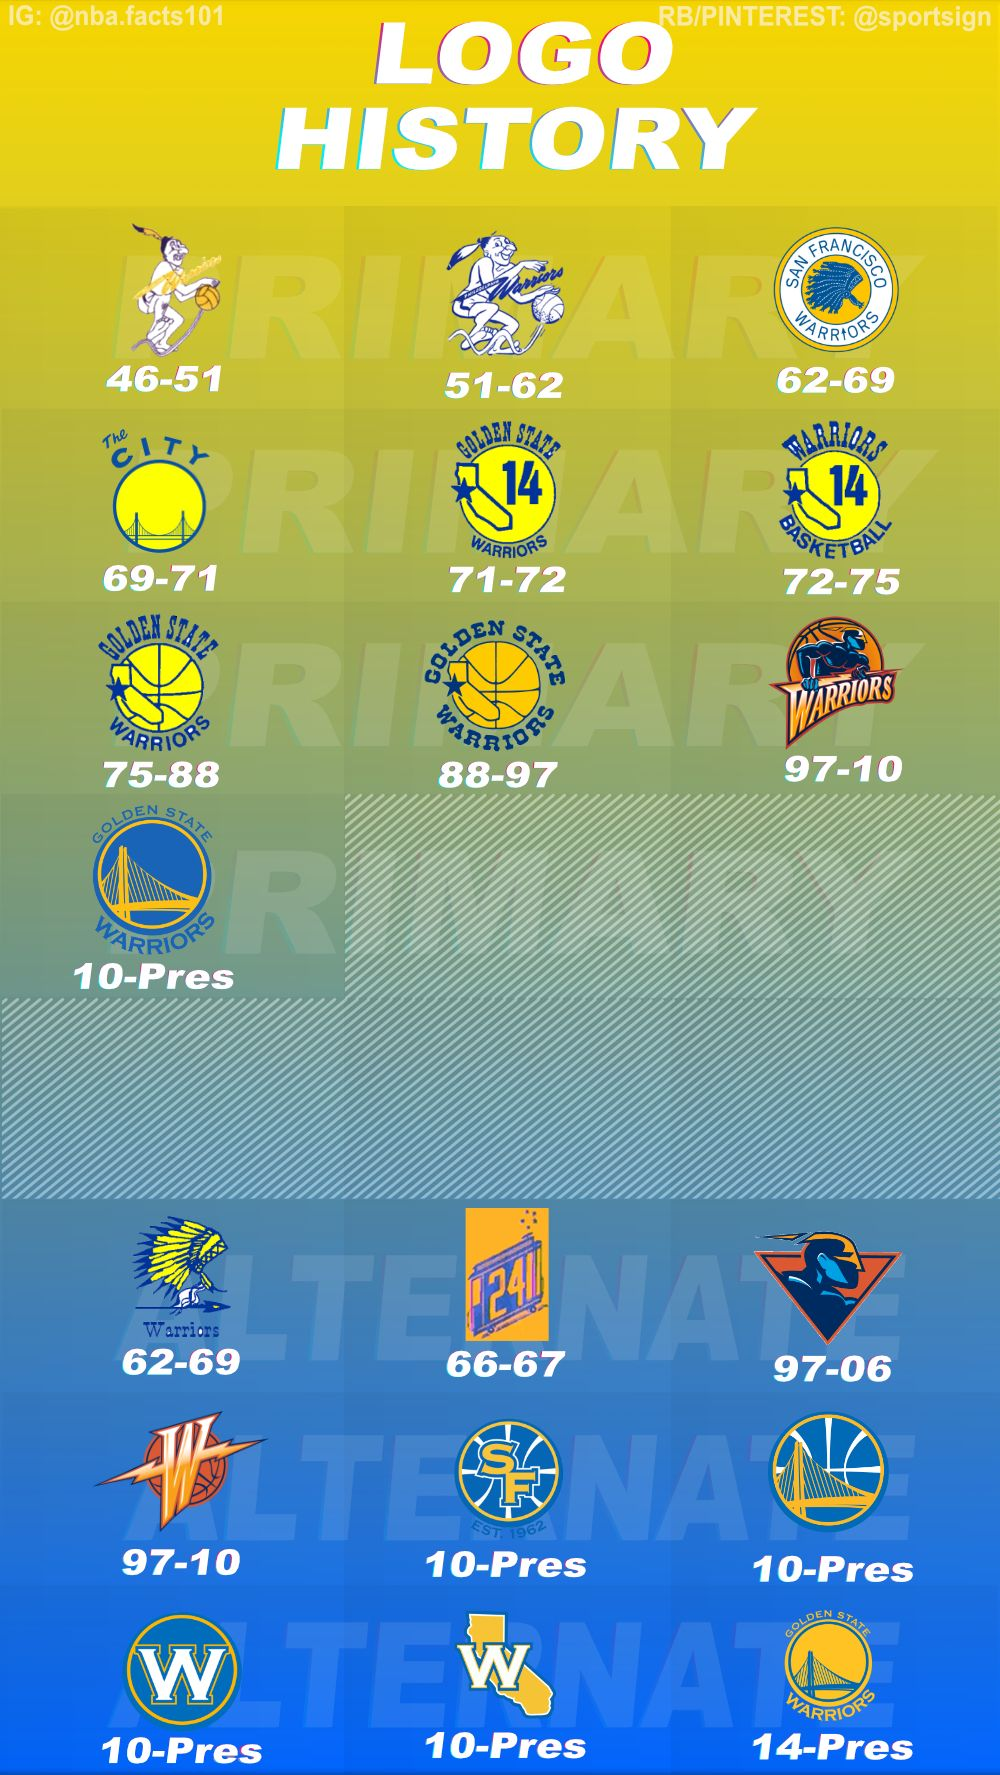 History of the NBA Basketball Team Golden State Warriors